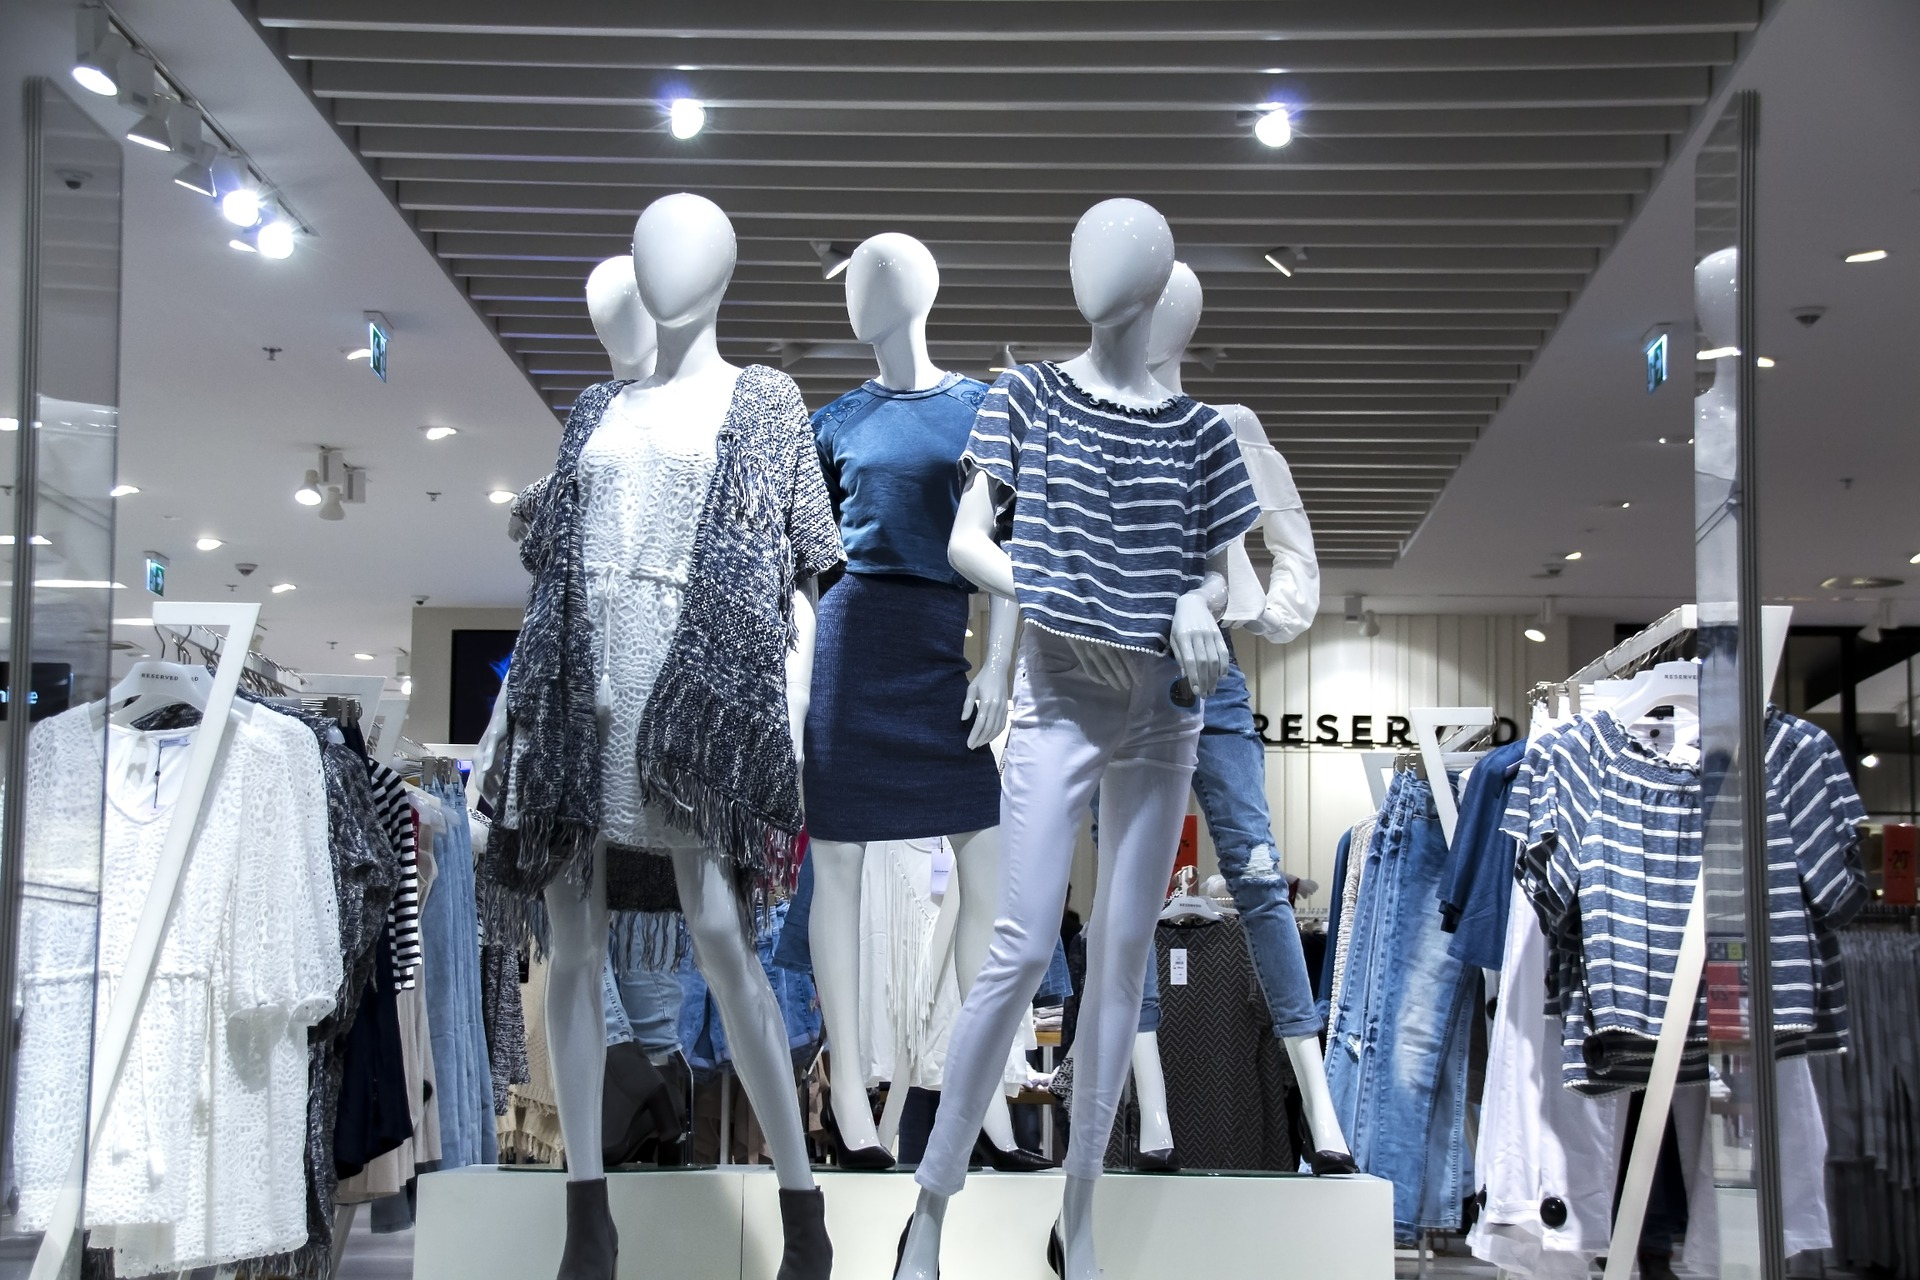 A bunch of mannequins representing different brands